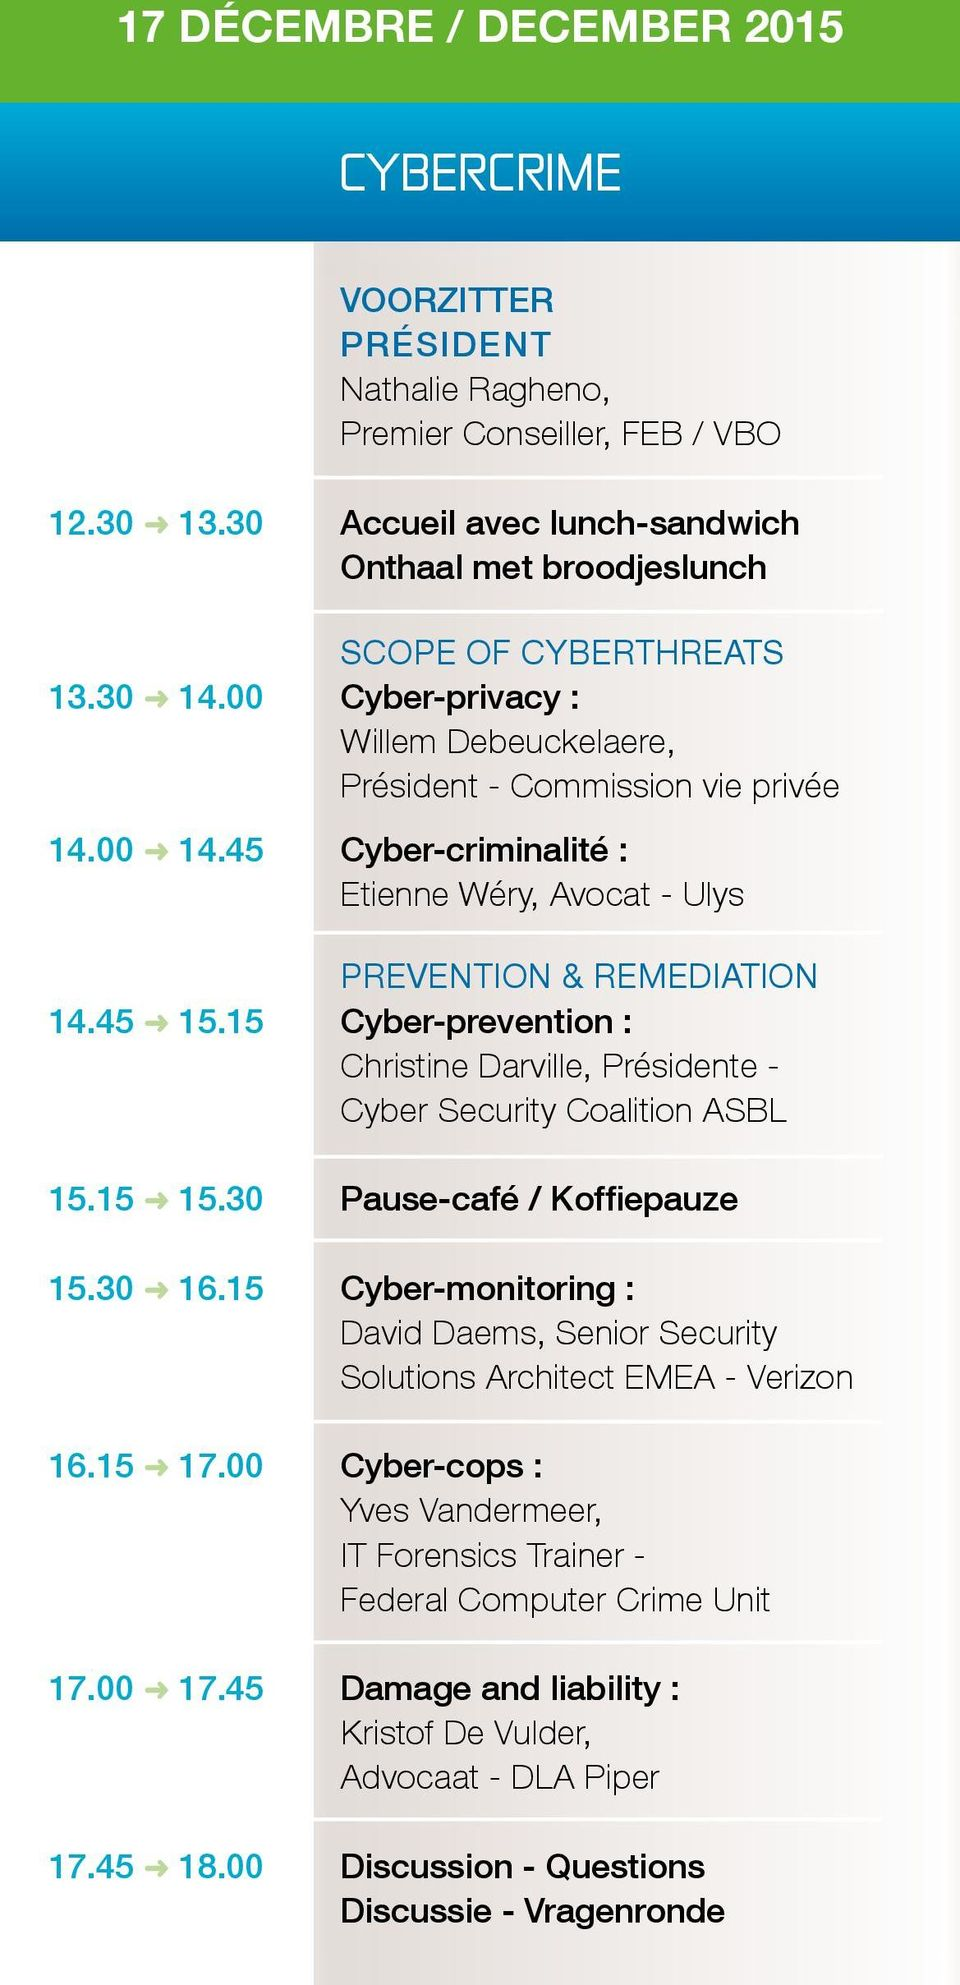 15 Cyber-prevention : Christine Darville, Présidente - Cyber Security Coalition ASBL 15.15 15.30 Pause-café / Koffiepauze 15.30 16.